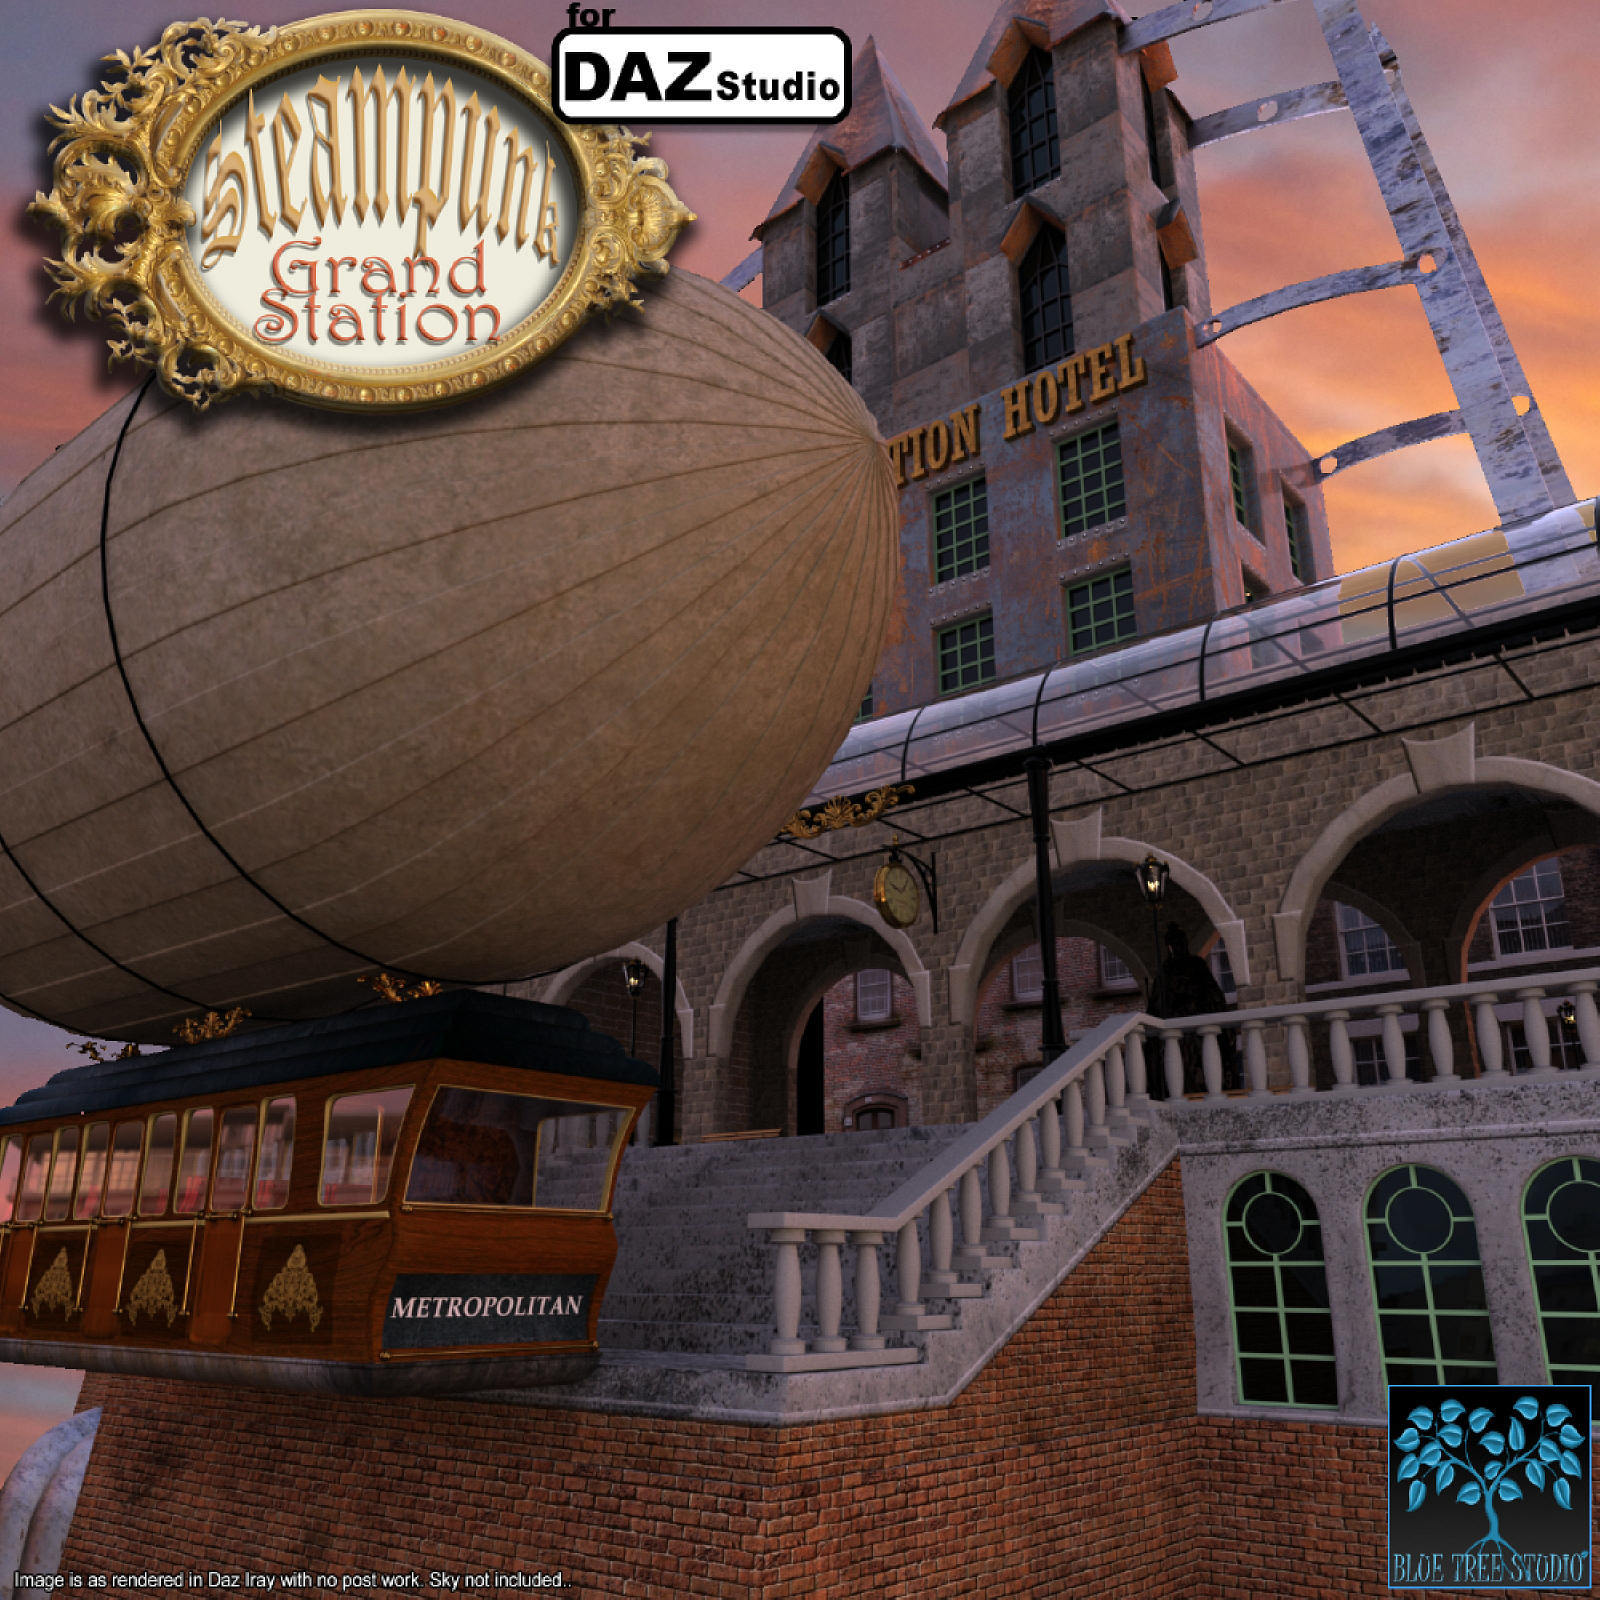 Steampunk Grand Station for Daz by BlueTreeStudio